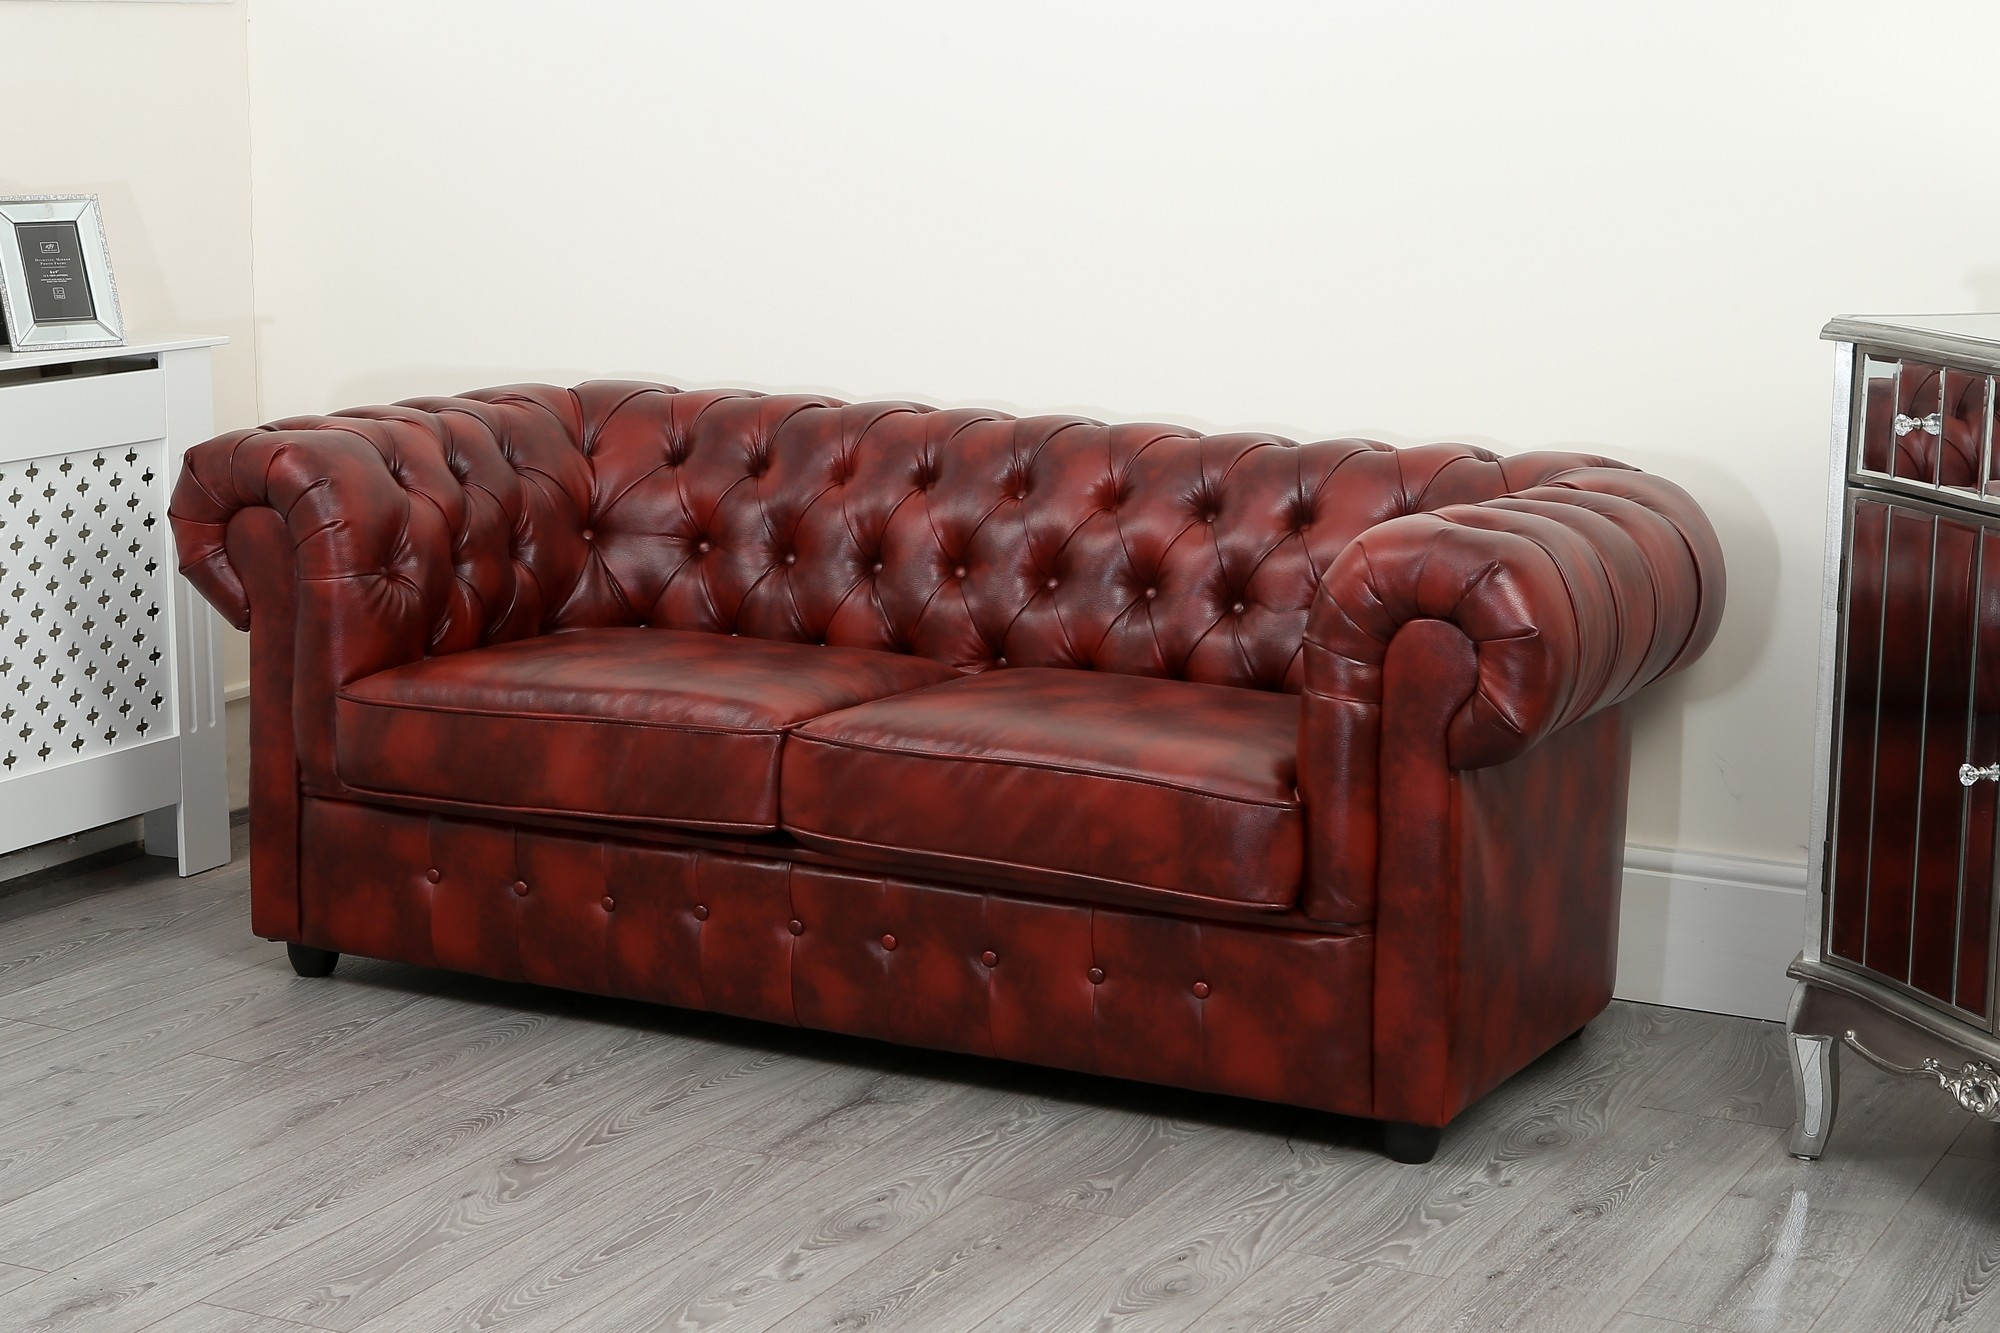 oxblood red chesterfield sofa can i reupholster my in leather 3 seater abreo home furniture